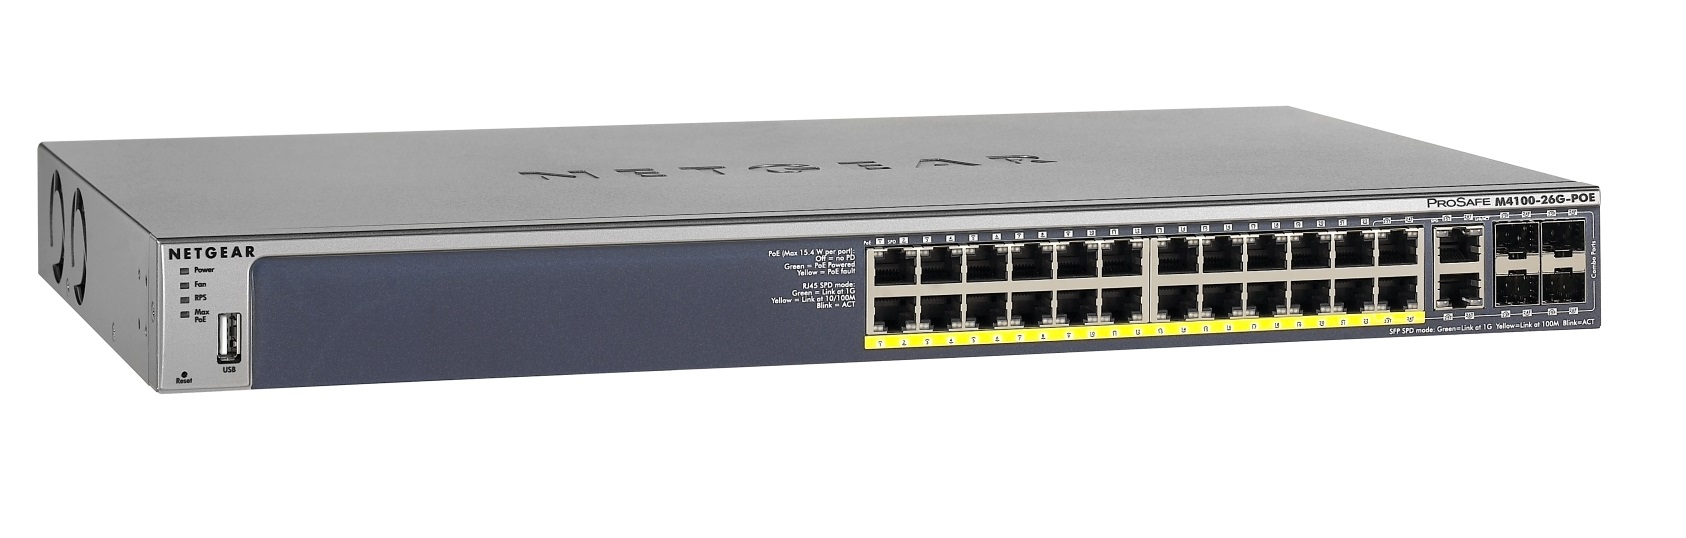 Netgear M4100-26G-PoE Managed Switch GSM7226LP 24xGbE PoE, 2xGbE, 4xSFP, 380W